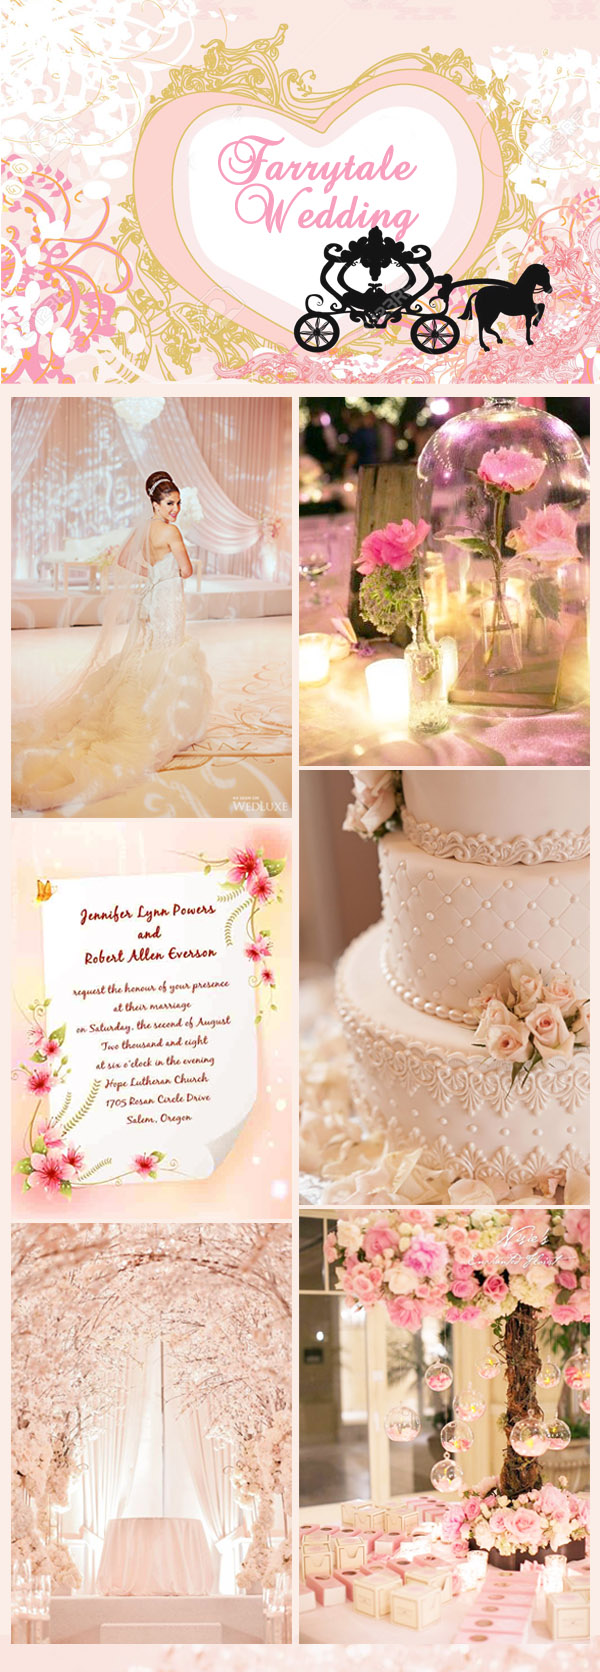 romantic-mordern-fairytale-wedding-ideas-and-invitations